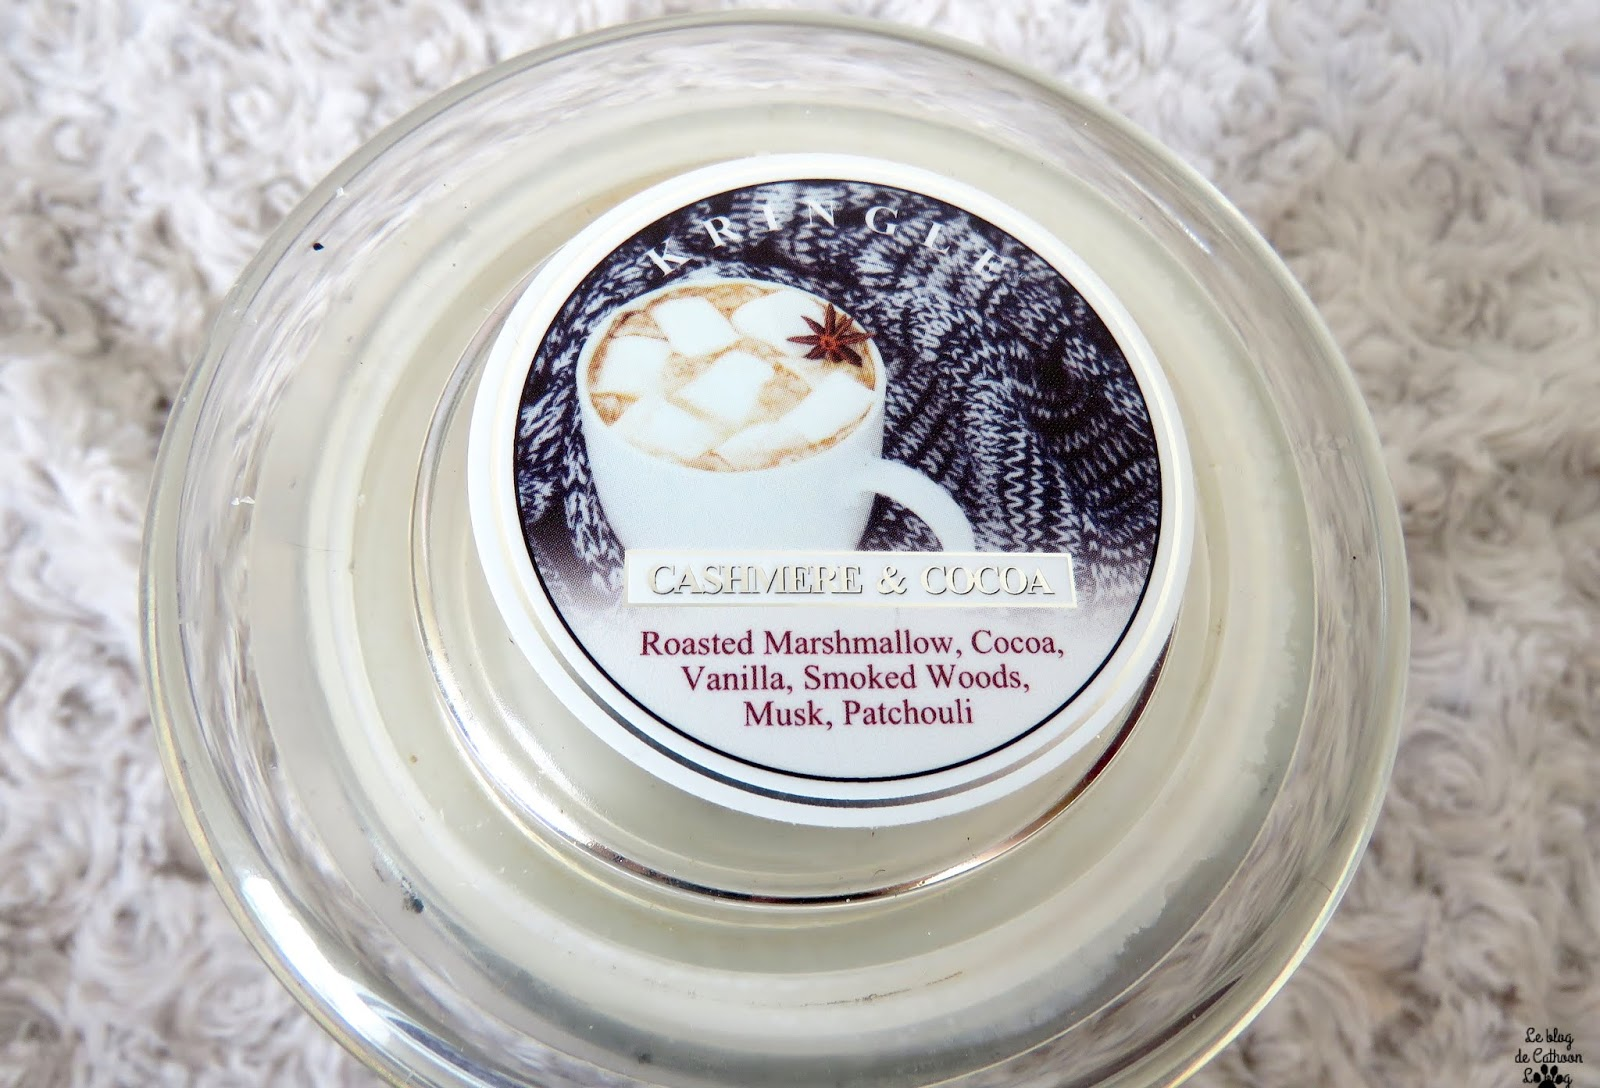 Cashmere & Cocoa - Kringle Candel